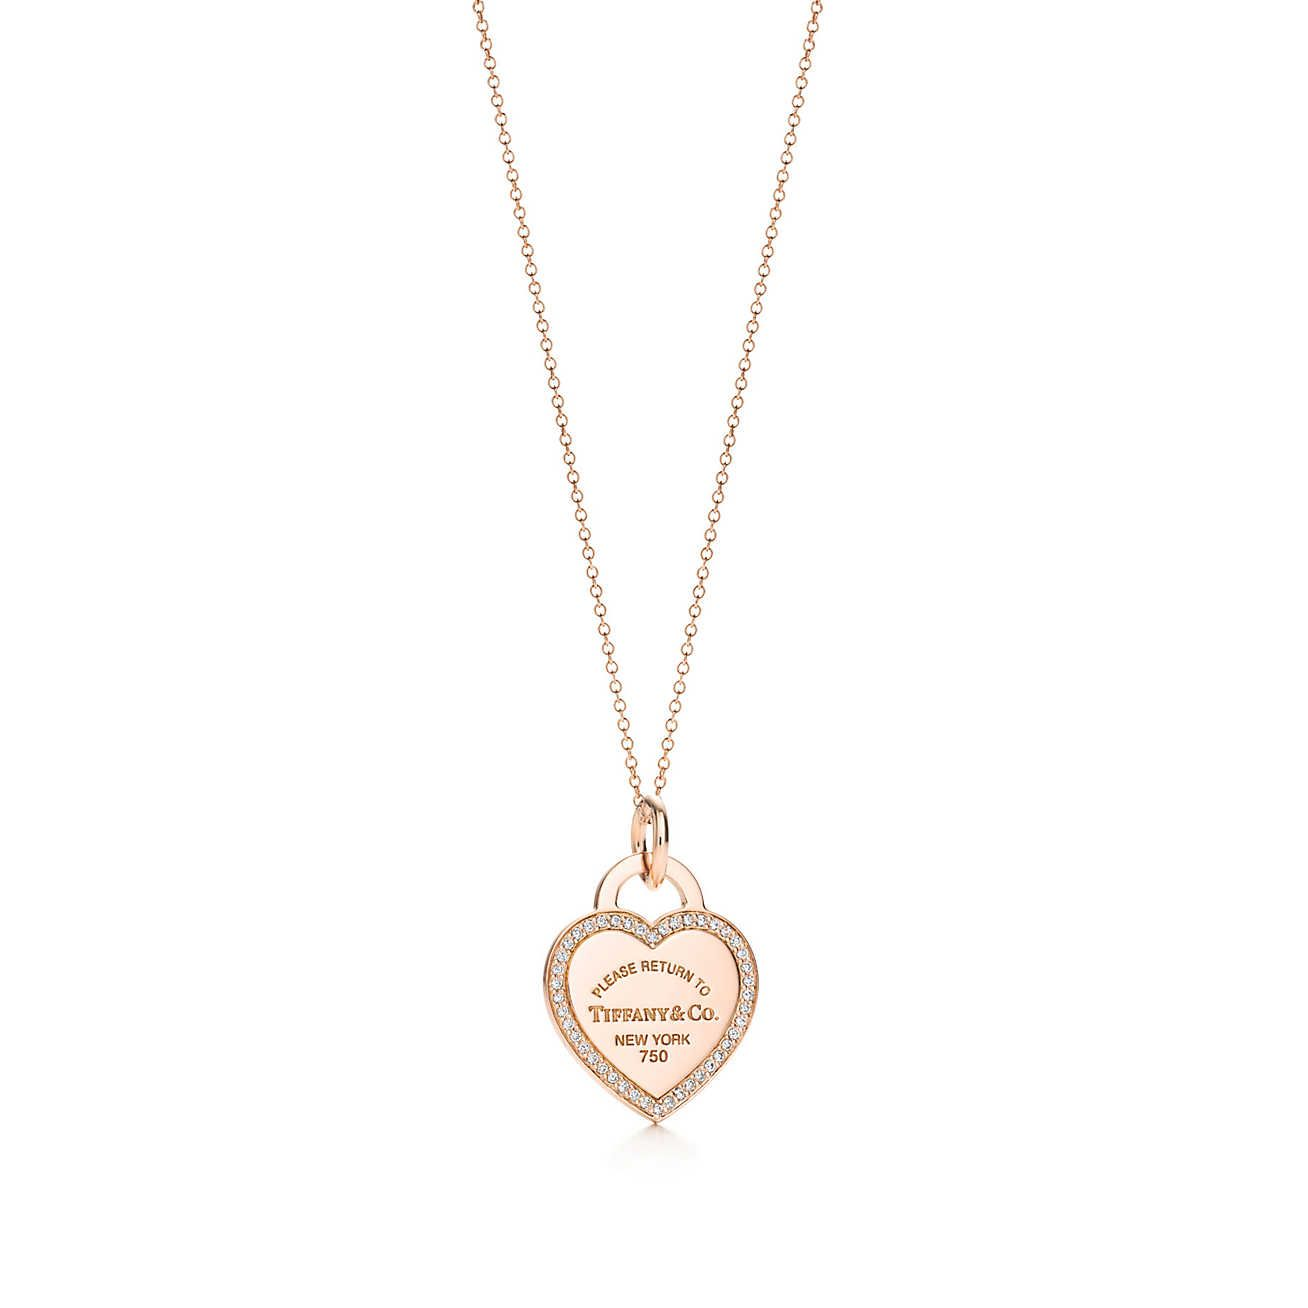 Return To Tiffany Heart Tag Charm And Chain Tiffany Co Necklace Tiffany Co Jewelry Rose Gold Heart Necklace